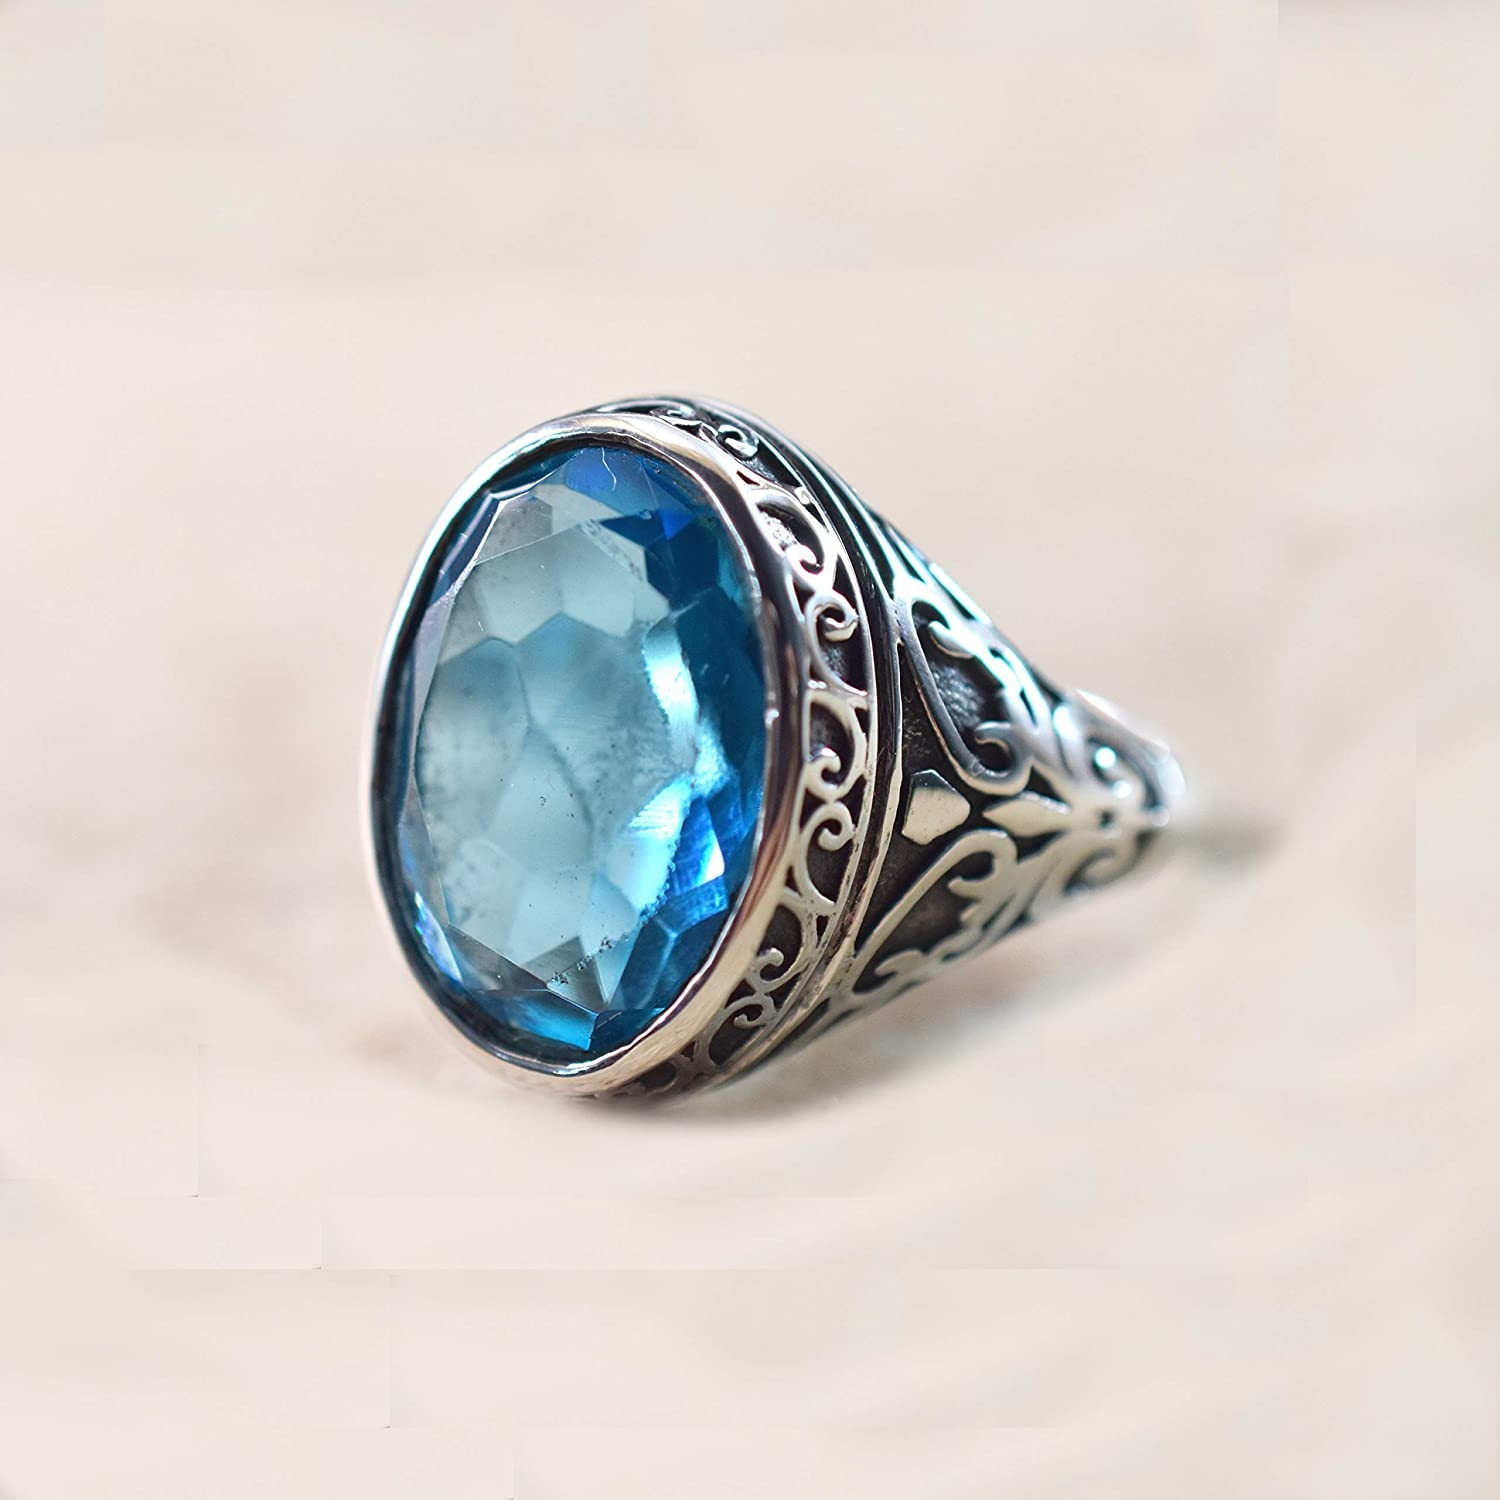 Handmade Topaz Band Ring December Birthstone Personalized Engagement Gift Natural Topaz Gem Ring for Men in Solid 925 Sterling Silver